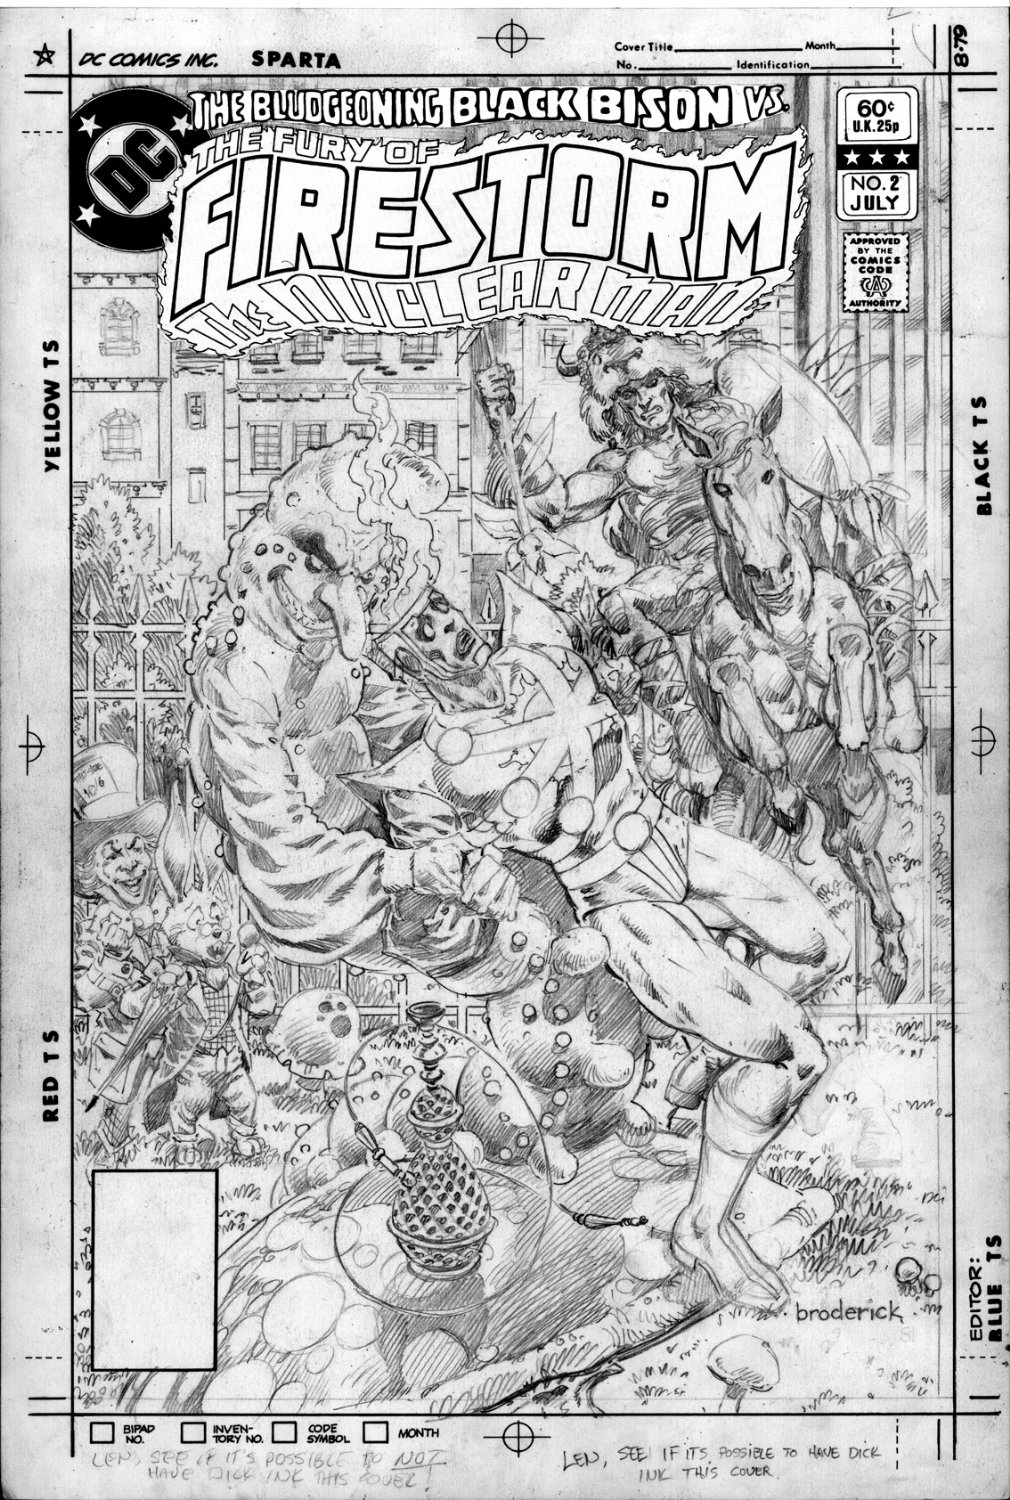 Fury of Firestorm #2 original cover by Pat Broderick